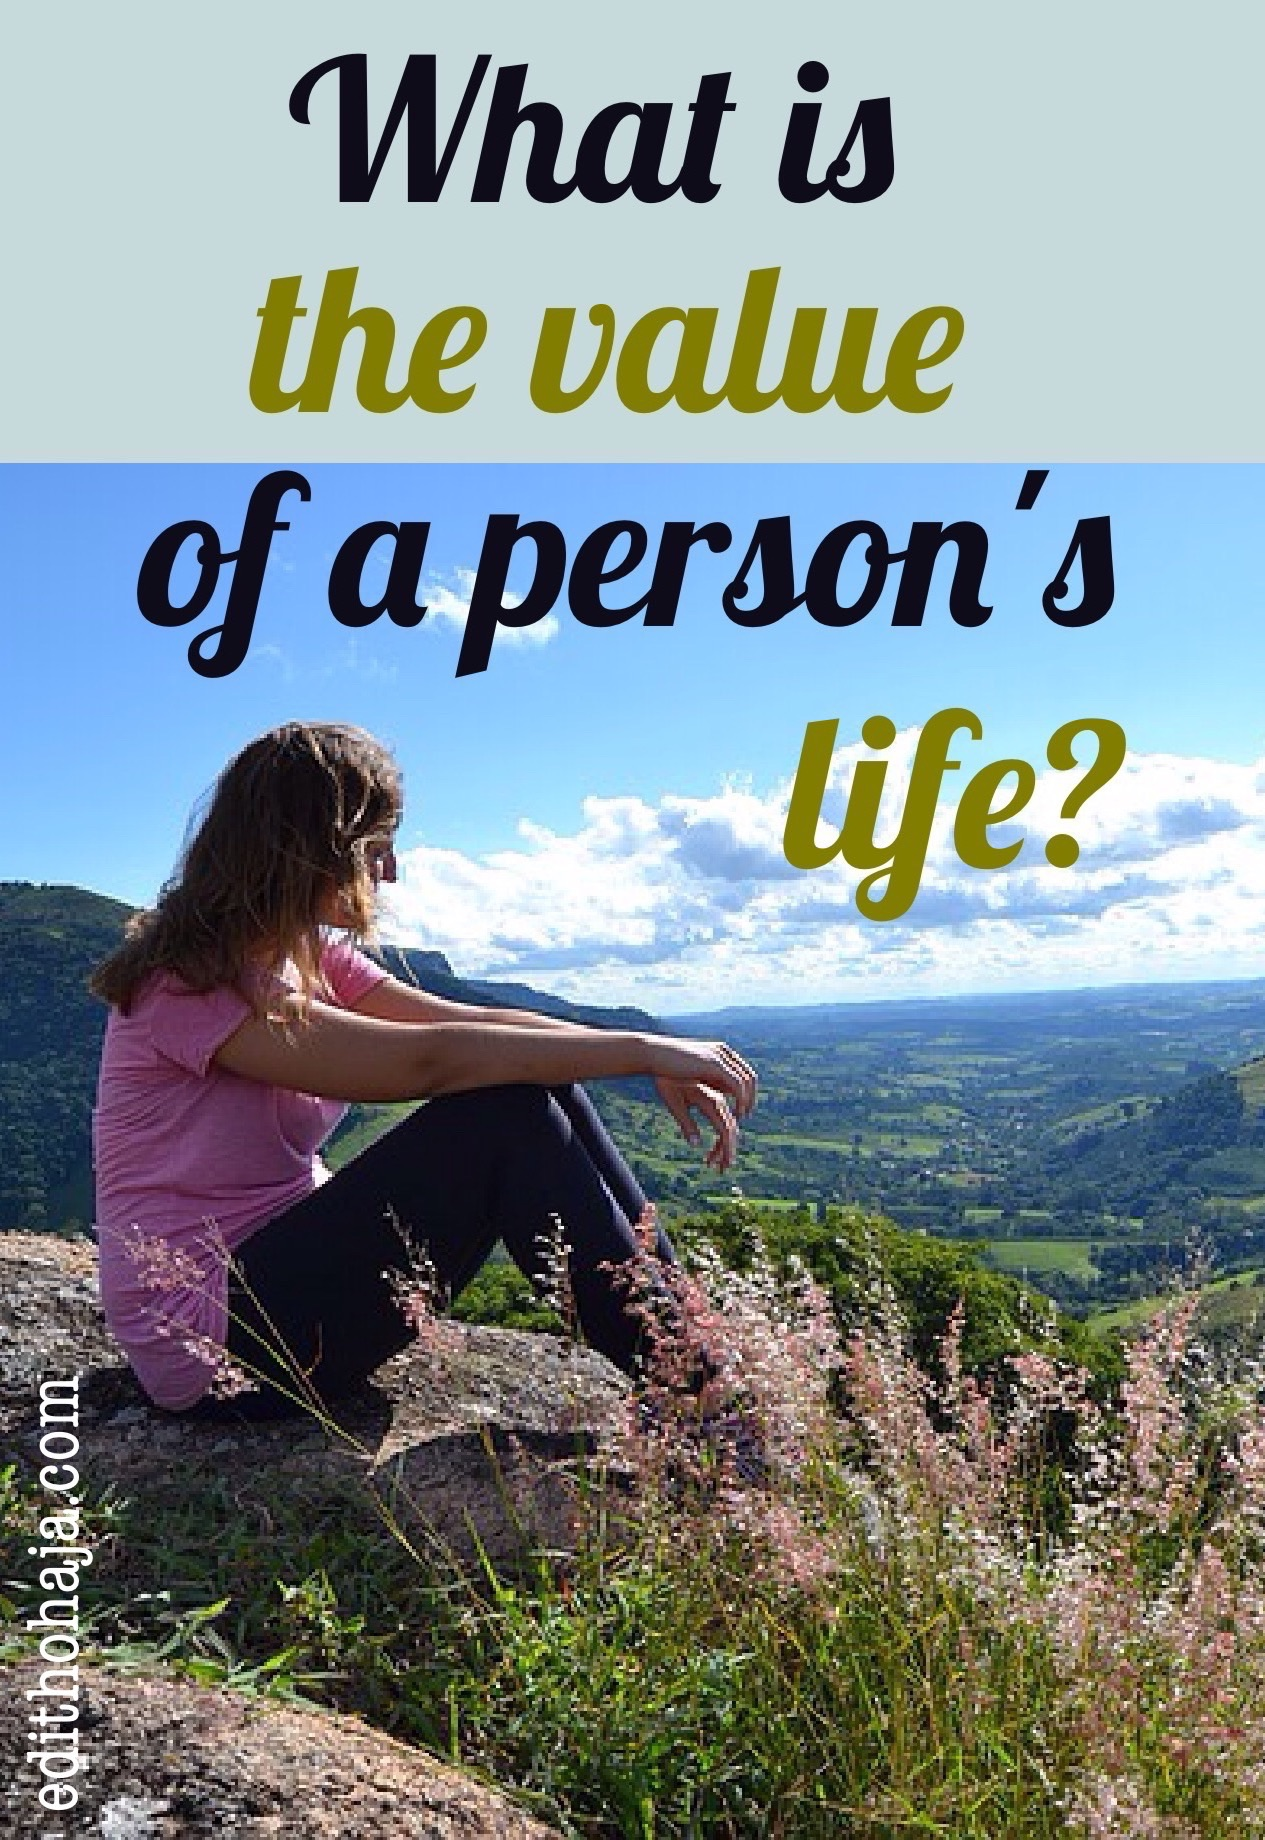 WHAT IS THE VALUE OF A PERSON'S LIFE?